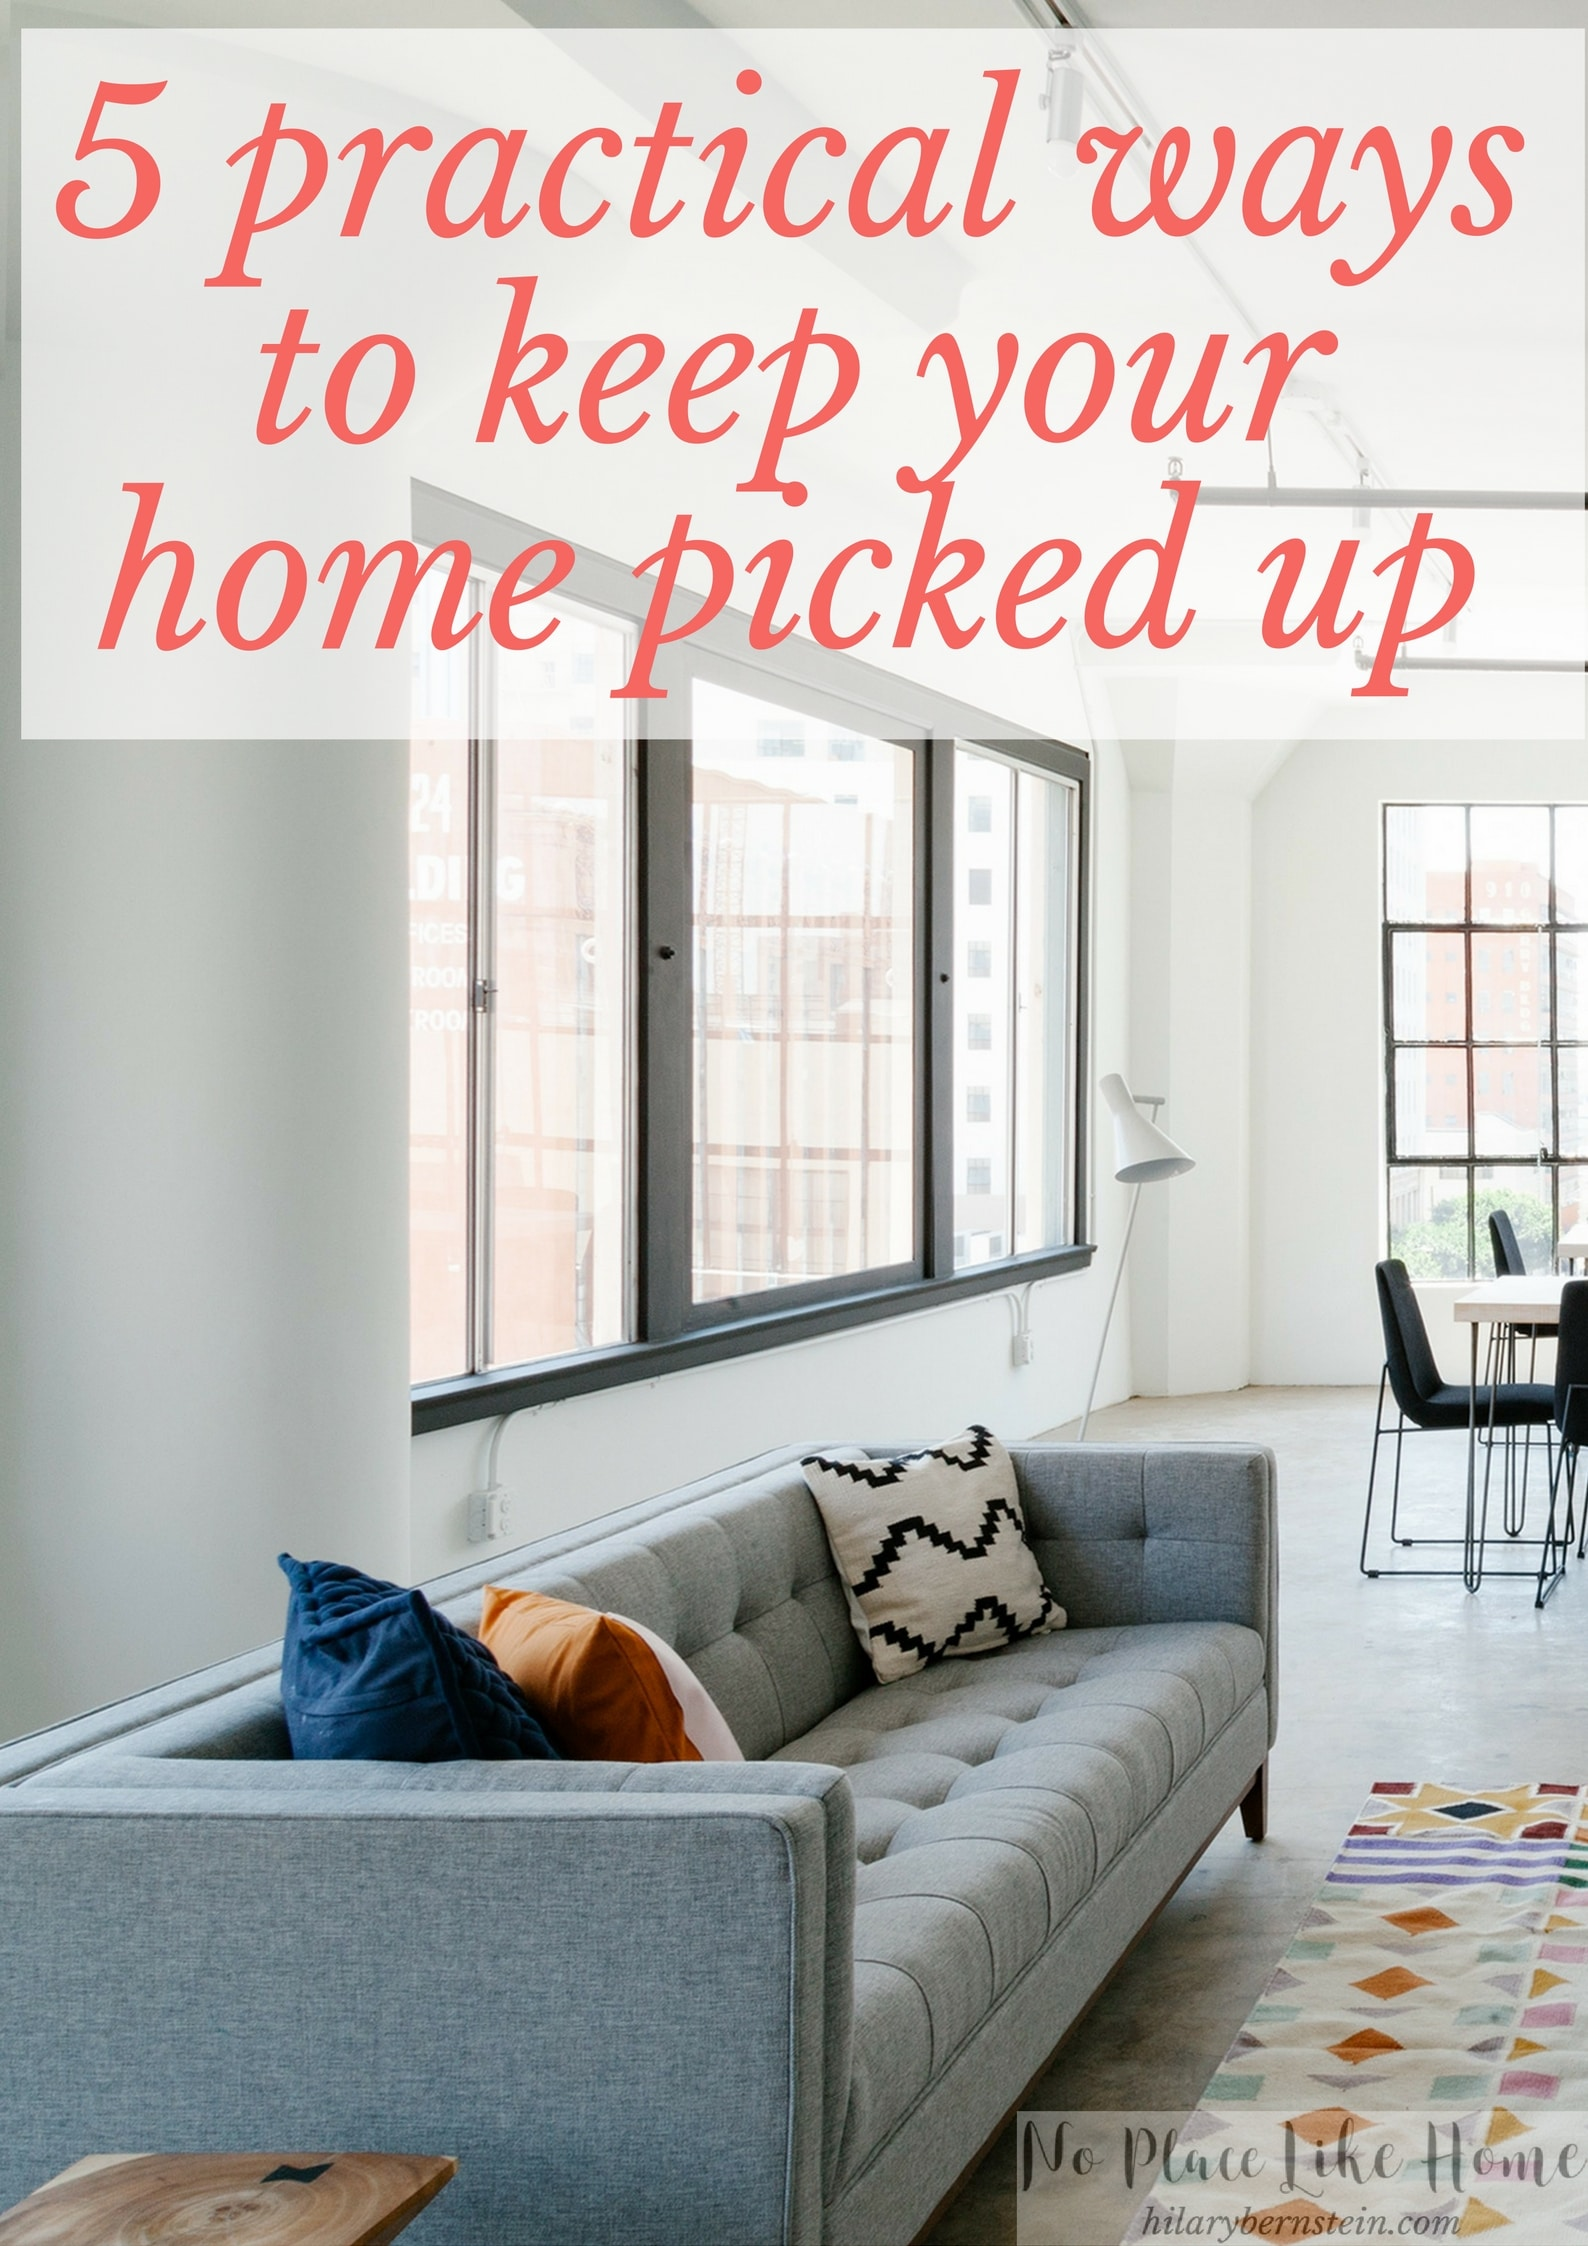 Maintaining a clean home doesn't have to be impossible. Try these 5 practical ways to keep your home picked up.